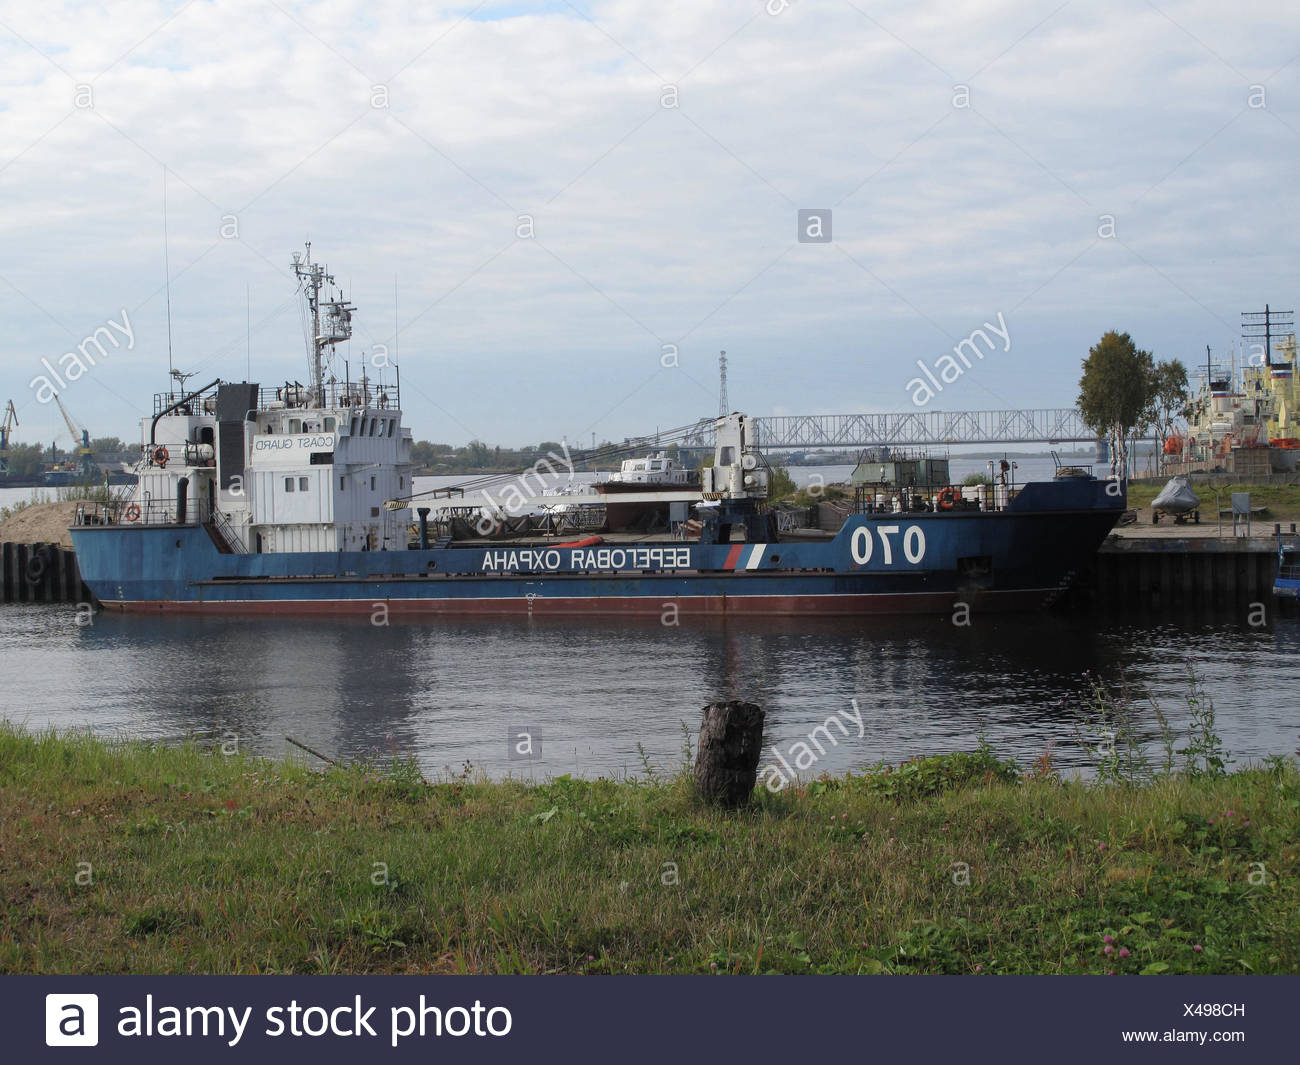 Russia, Archangelsk, supply vessel, transport ship, transport ship, ship, freighter, transport, landing stage, invest, bridge, waters, river, sea, - Stock Image